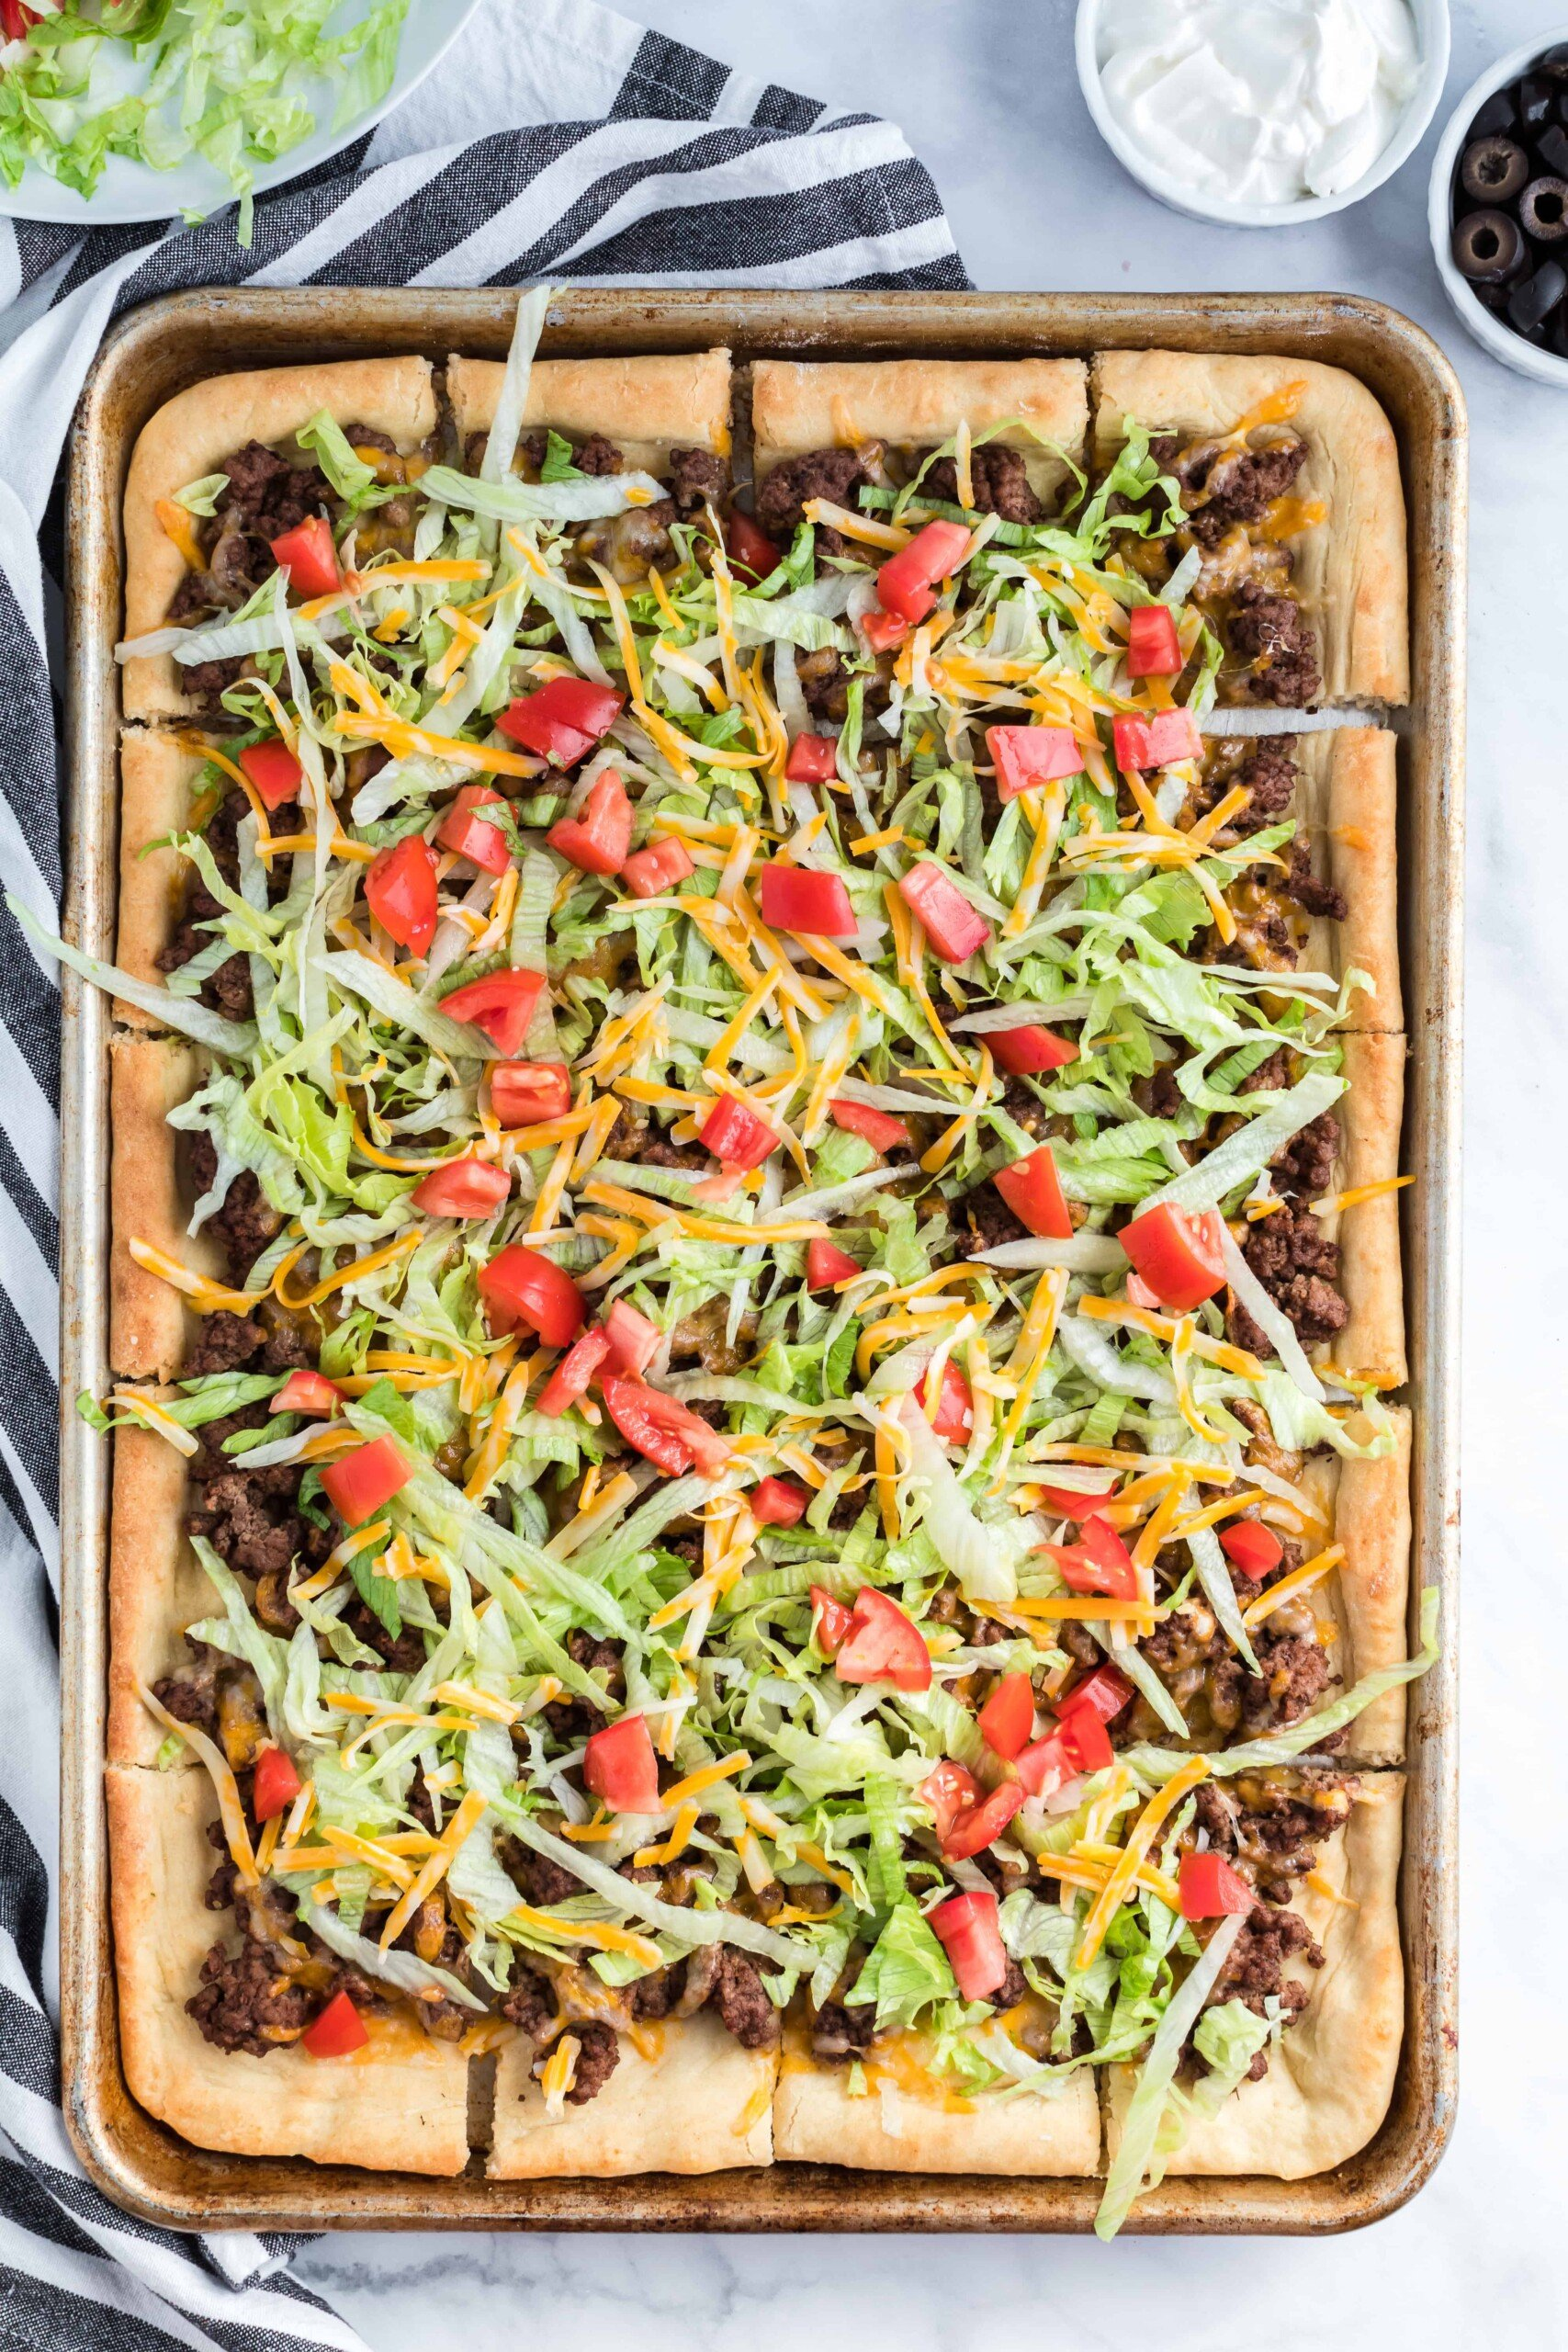 Baked taco pizza in a metal pan topped with lettuce and tomatoes.